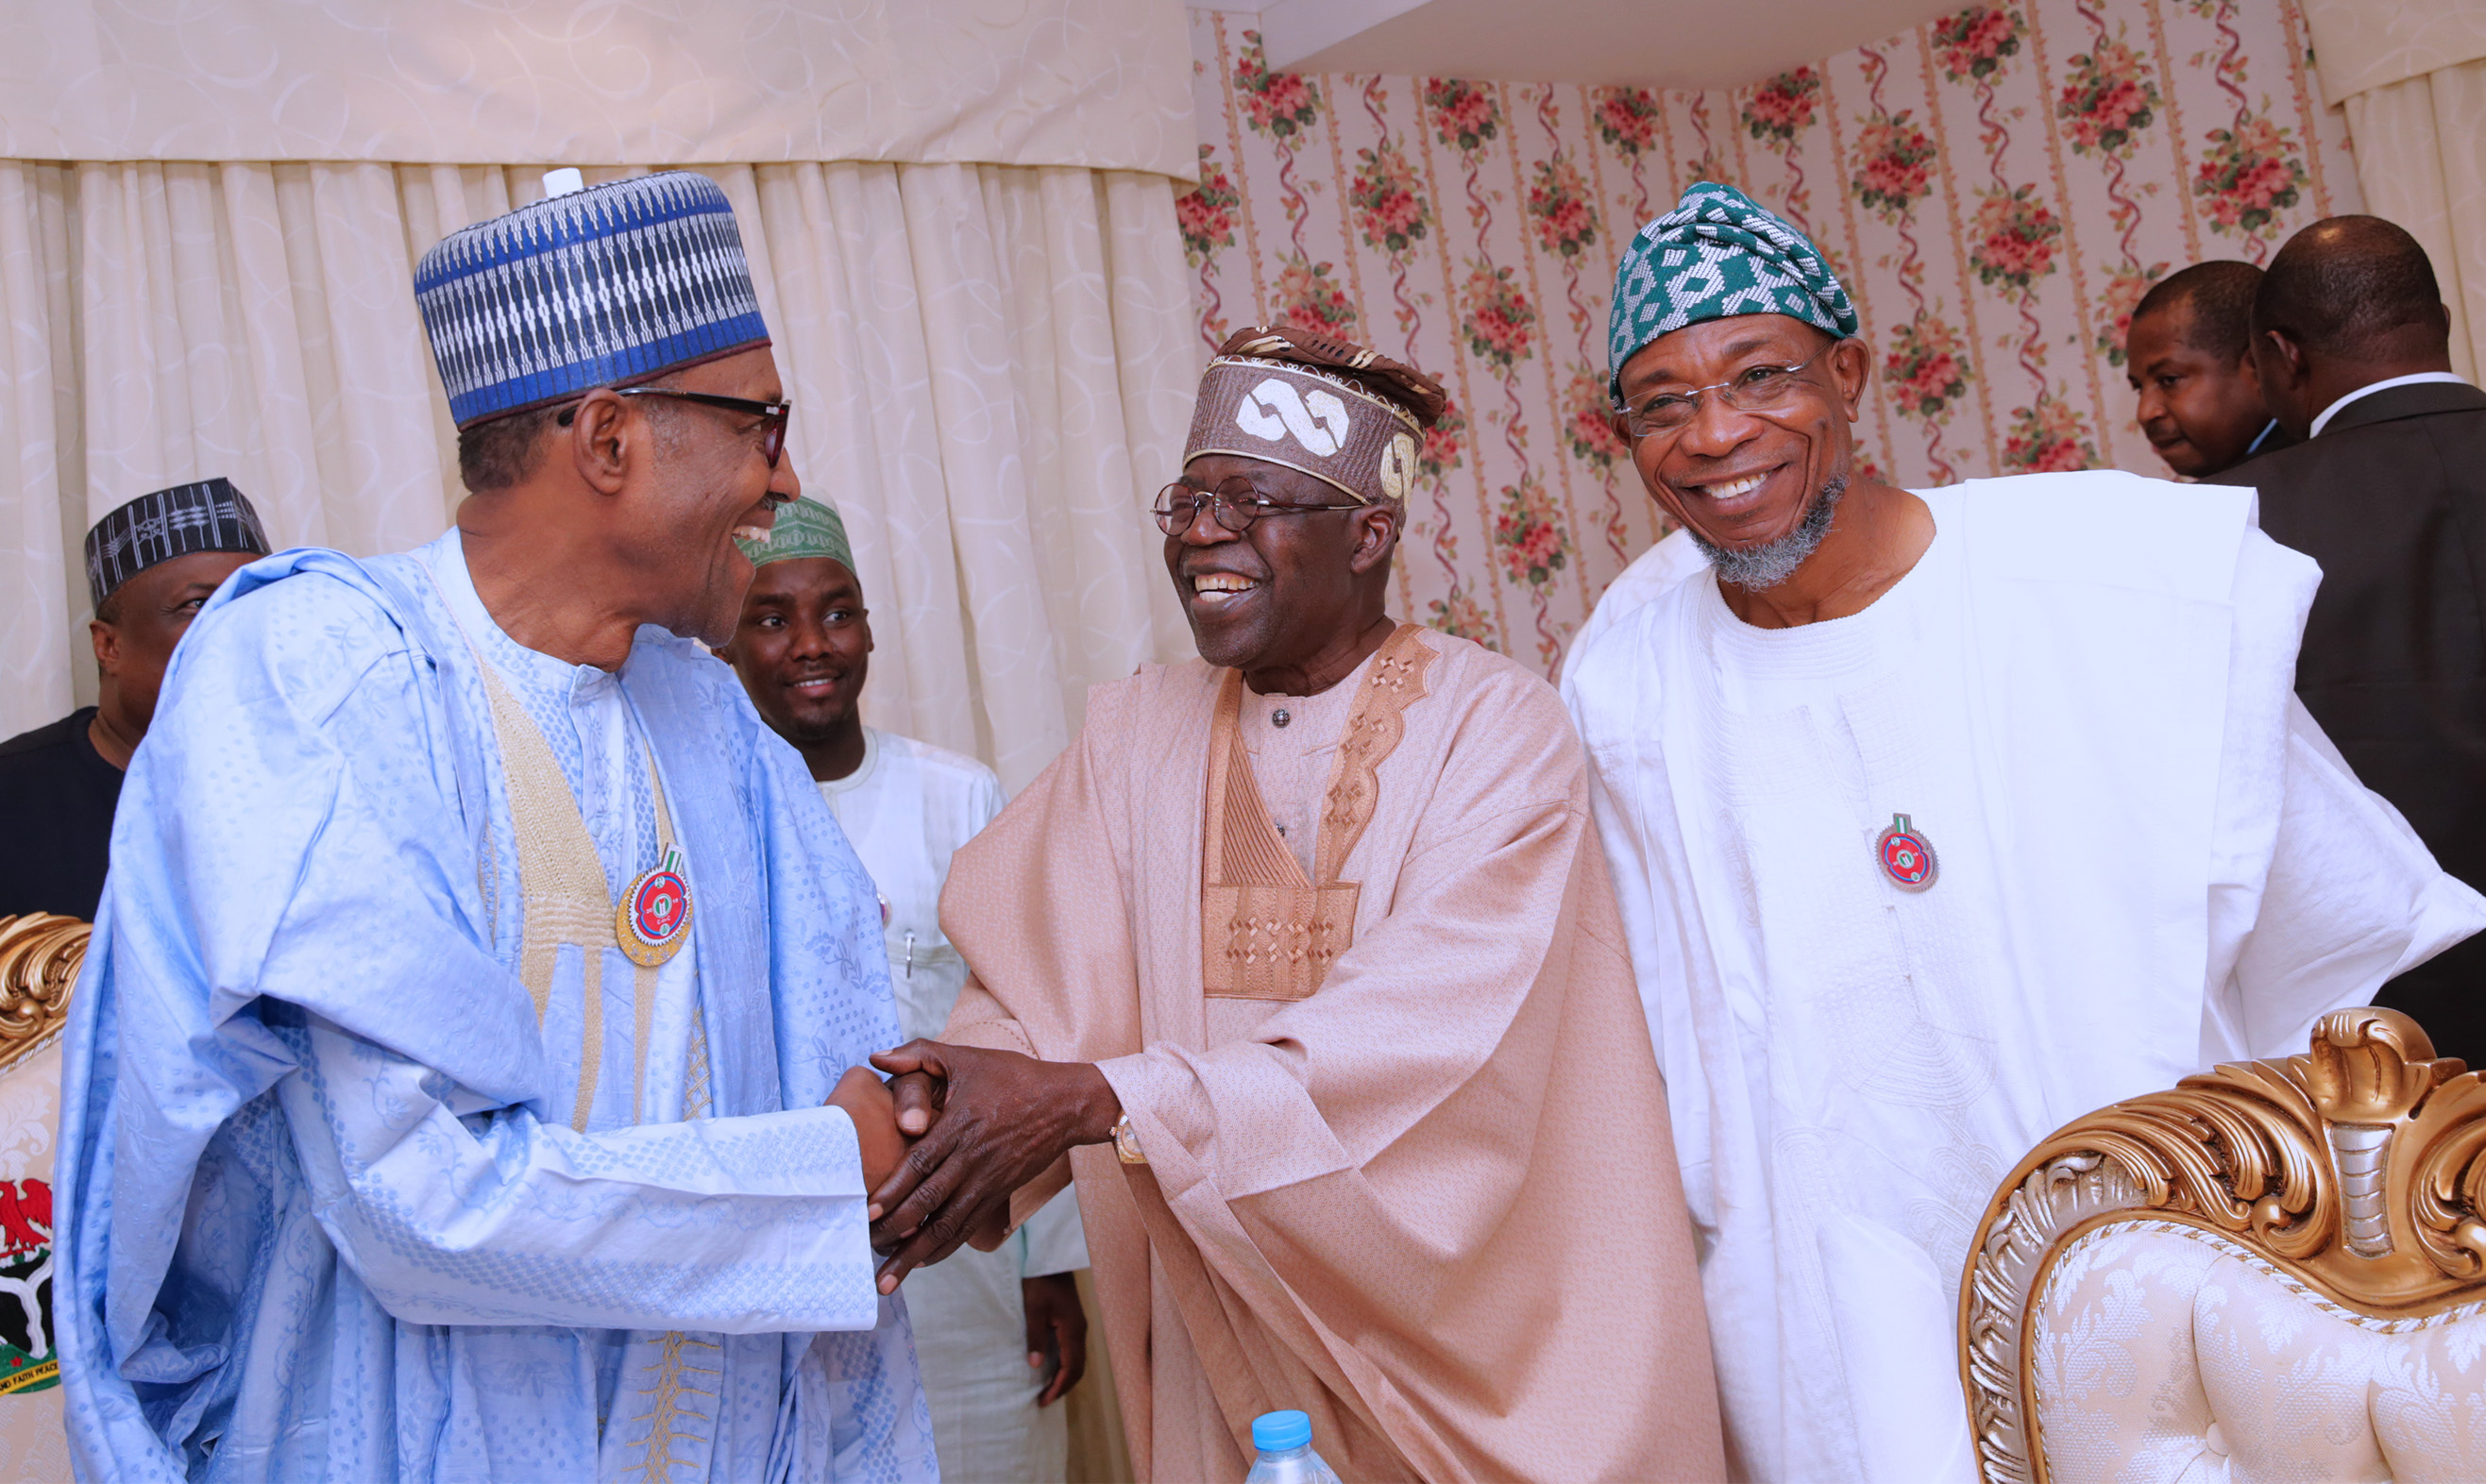 Buhari is right to appoint Tinubu to try mend political fences ahead of 2019 elections-Senate Leader